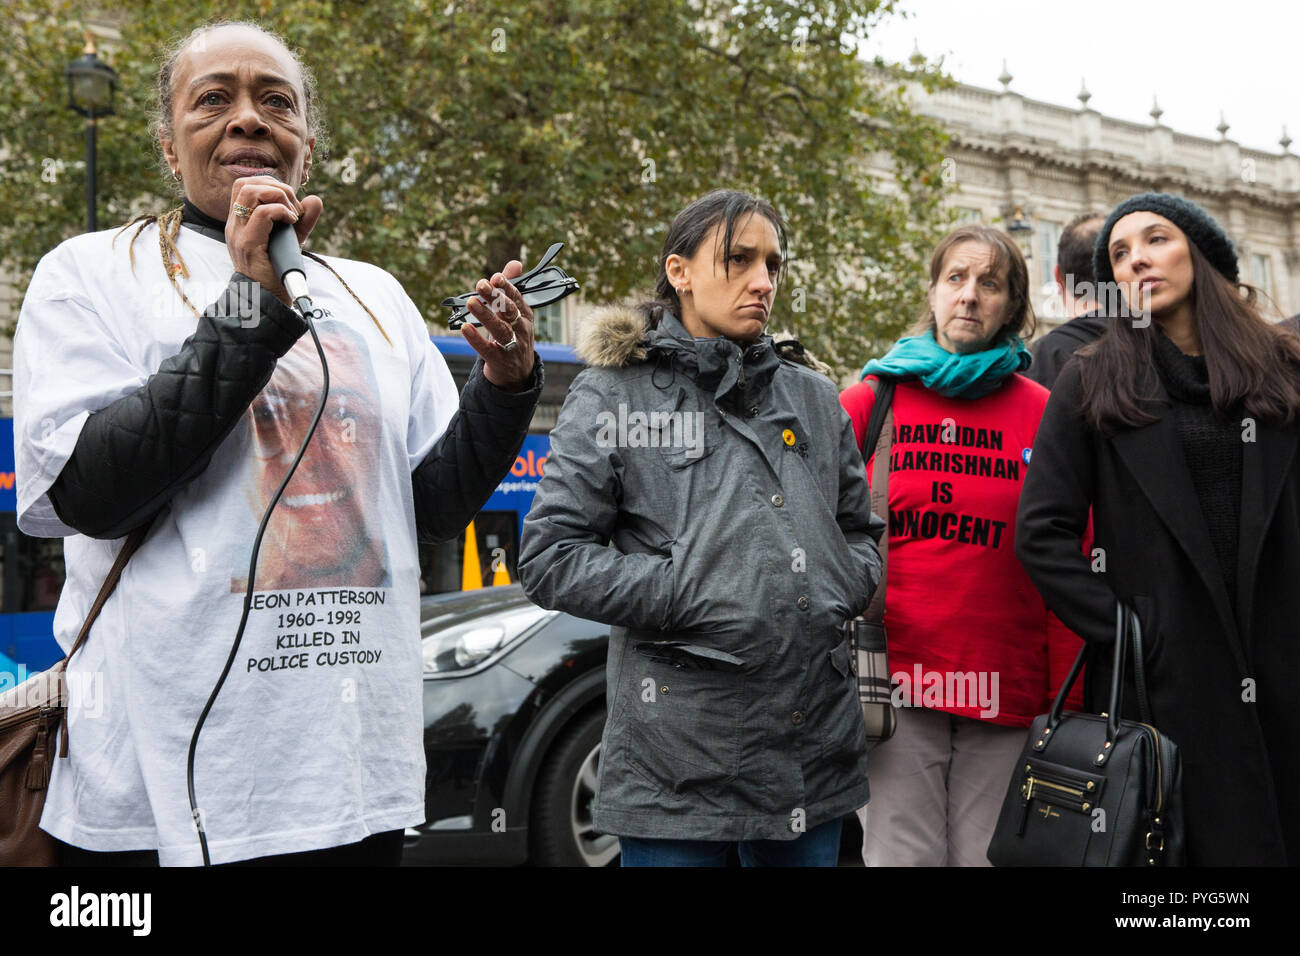 London, UK. 27th October, 2018. Stephanie Lightfoot-Bennett, twin sister of Leon Patterson, addresses campaigners from the United Families and Friends Campaign (UFFC) taking part in the 20th annual procession to Downing Street in remembrance of family members and friends who died in police custody, prison, immigration detention or secure psychiatric hospitals. Leon Patterson died in November 1992 after spending a week in custody at Stockport police station. Credit: Mark Kerrison/Alamy Live News - Stock Image